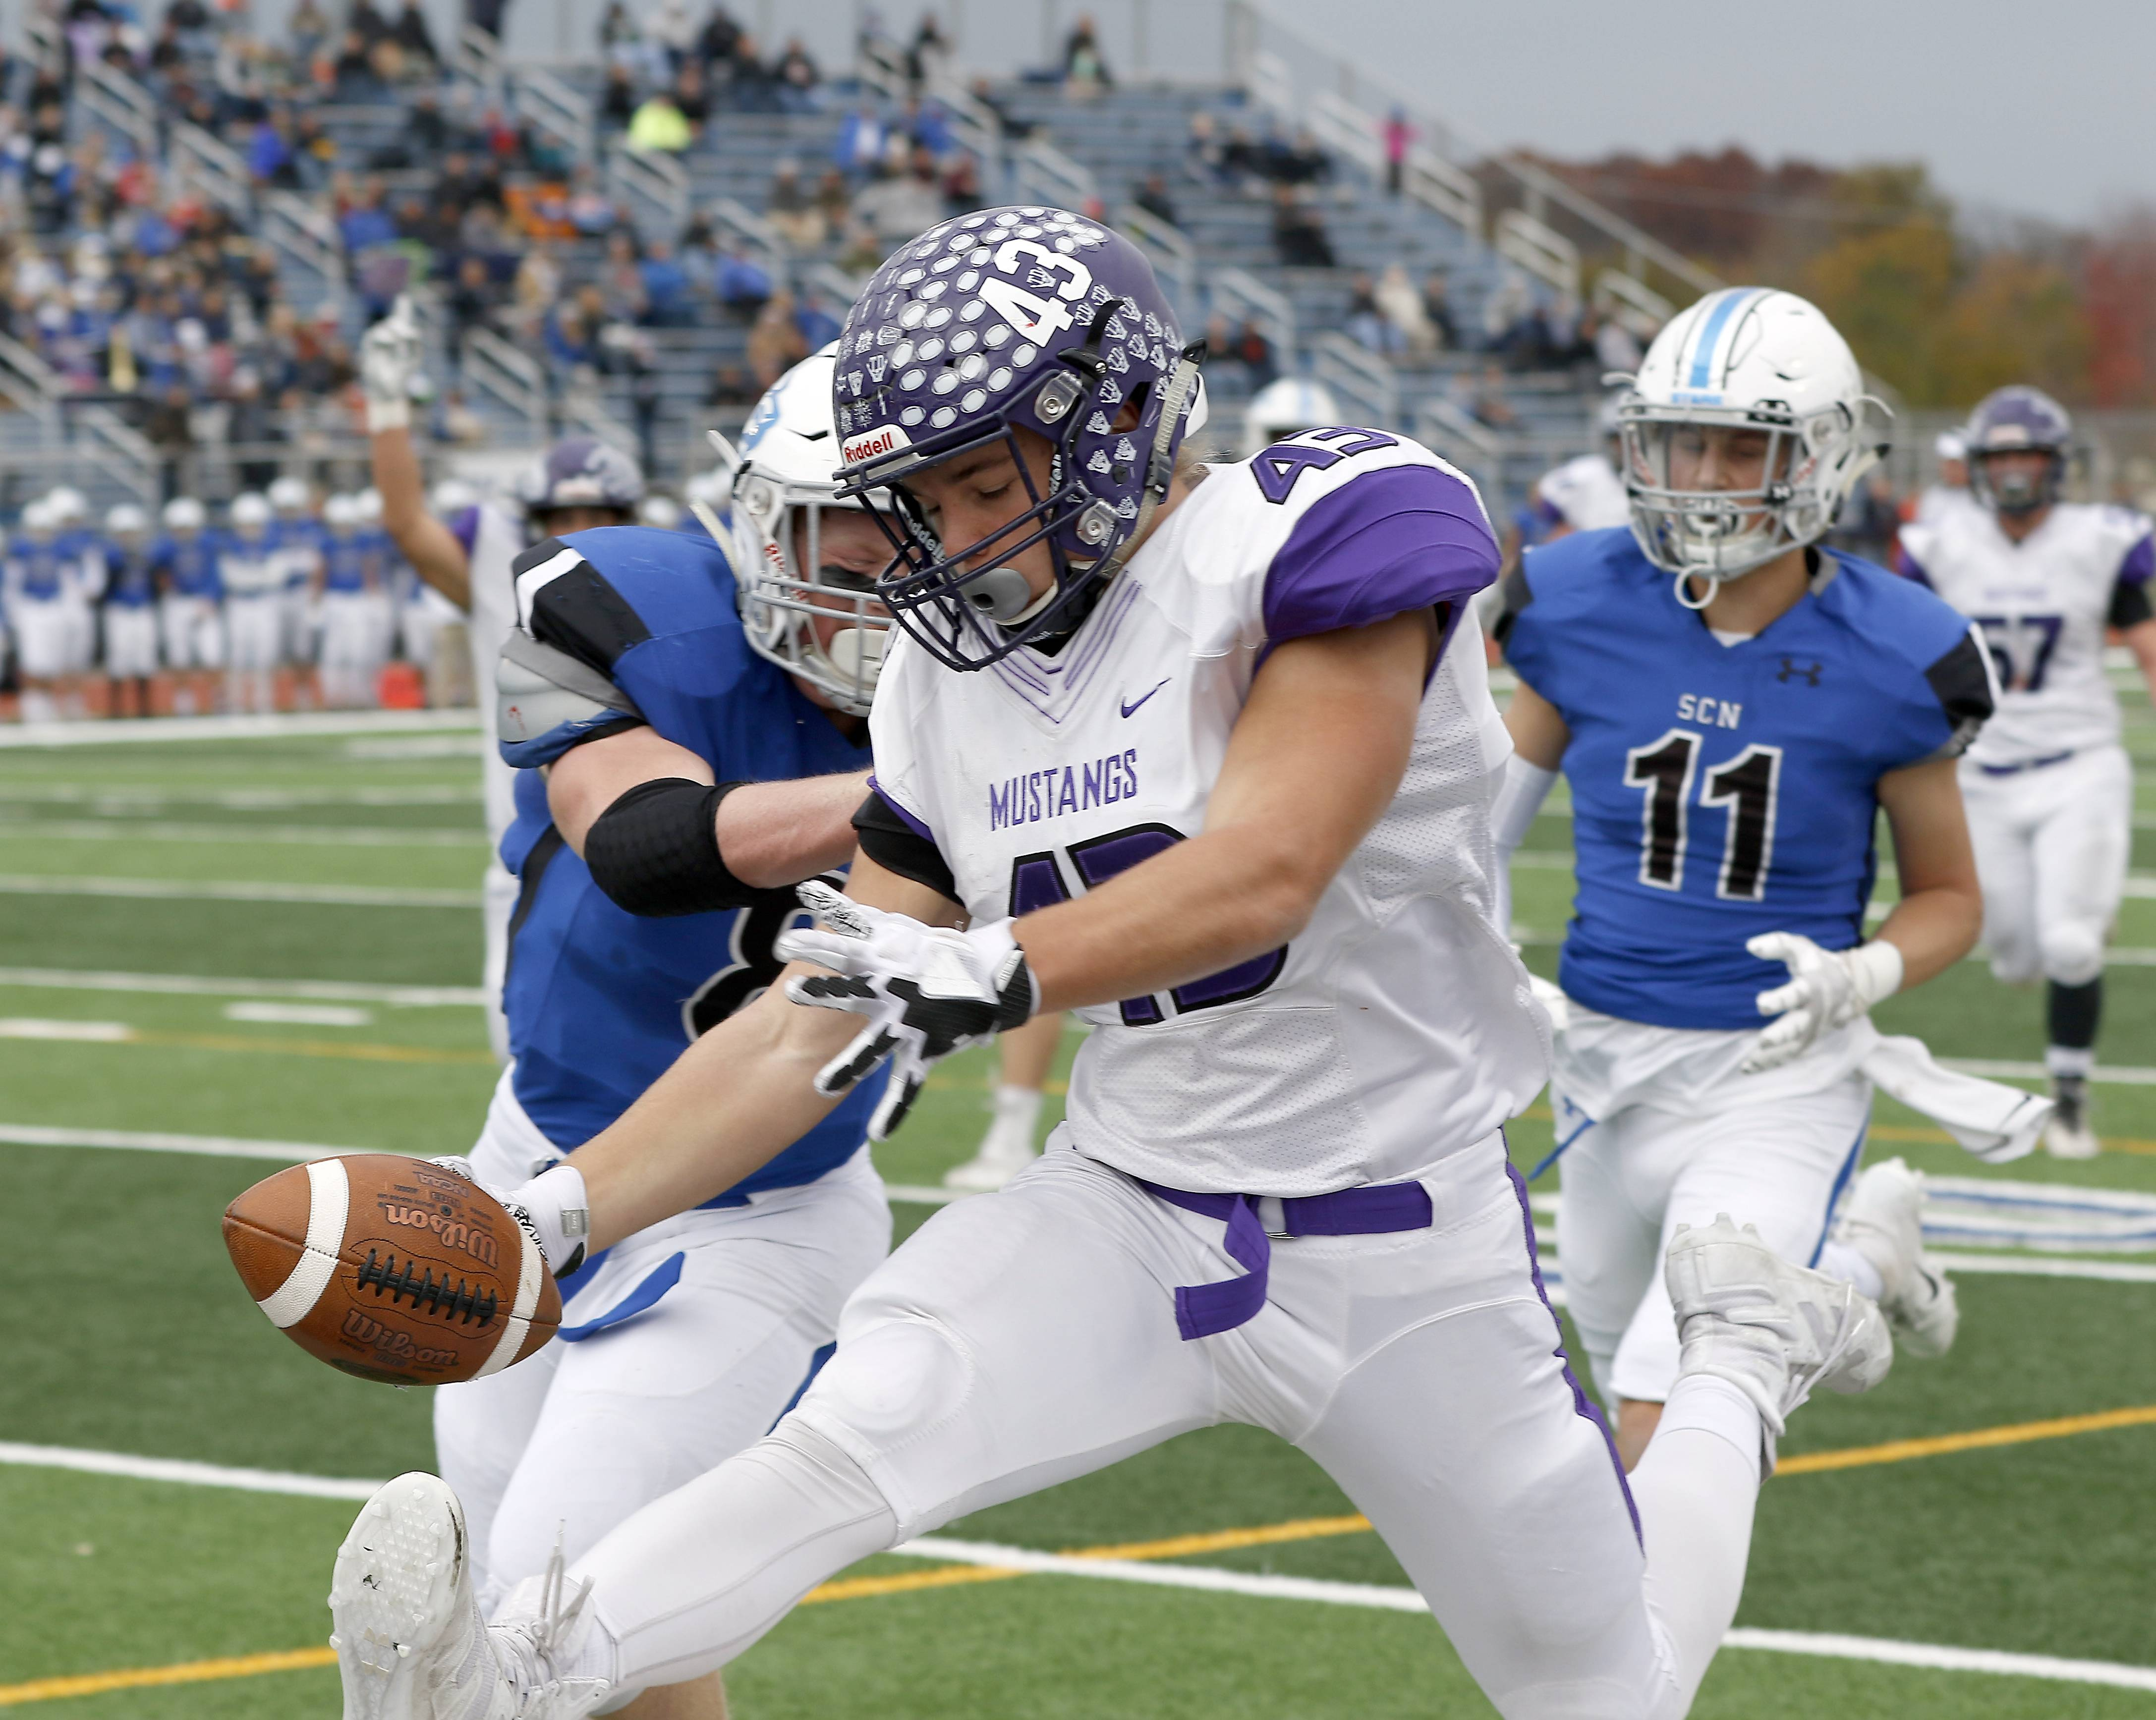 Rolling Meadows' Tymoteusz Szylak (43) heads in for a touchdown Saturday during IHSA Class 7A playoff football in St. Charles.